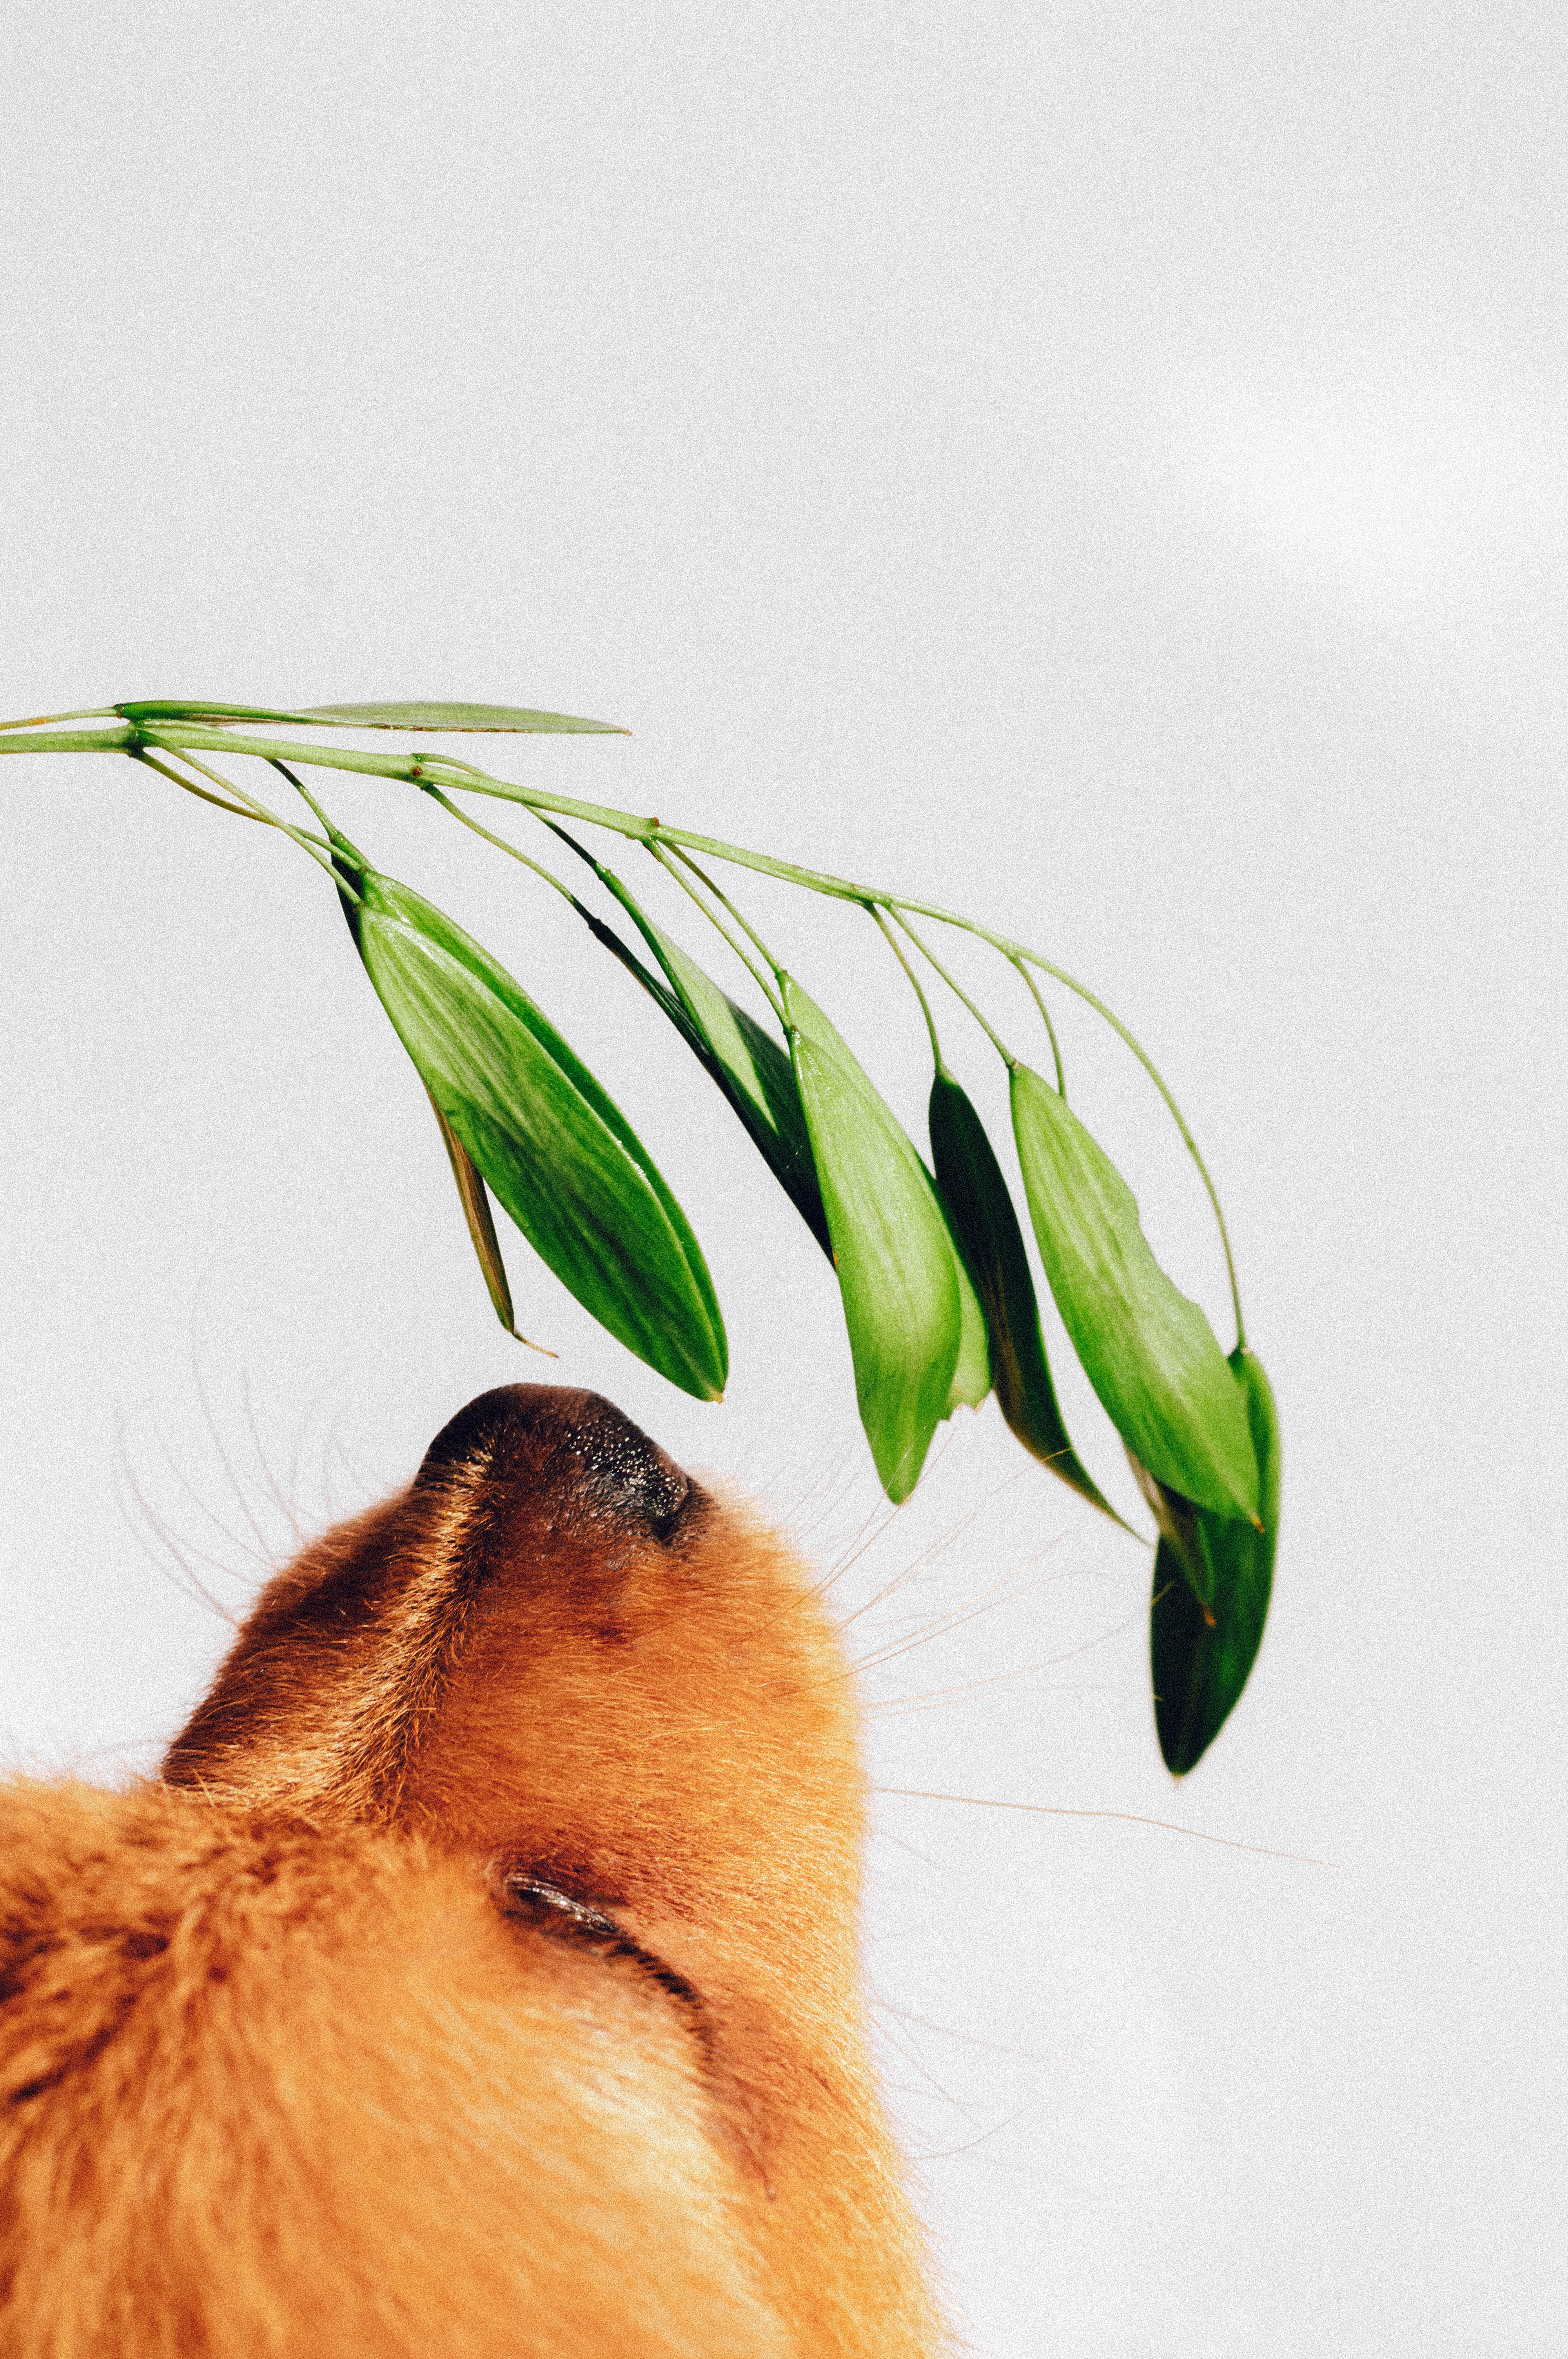 121310 Screensavers and Wallpapers Nose for phone. Download Animals, Plant, Dog, Puppy, Nose, To Sniff, Smell pictures for free